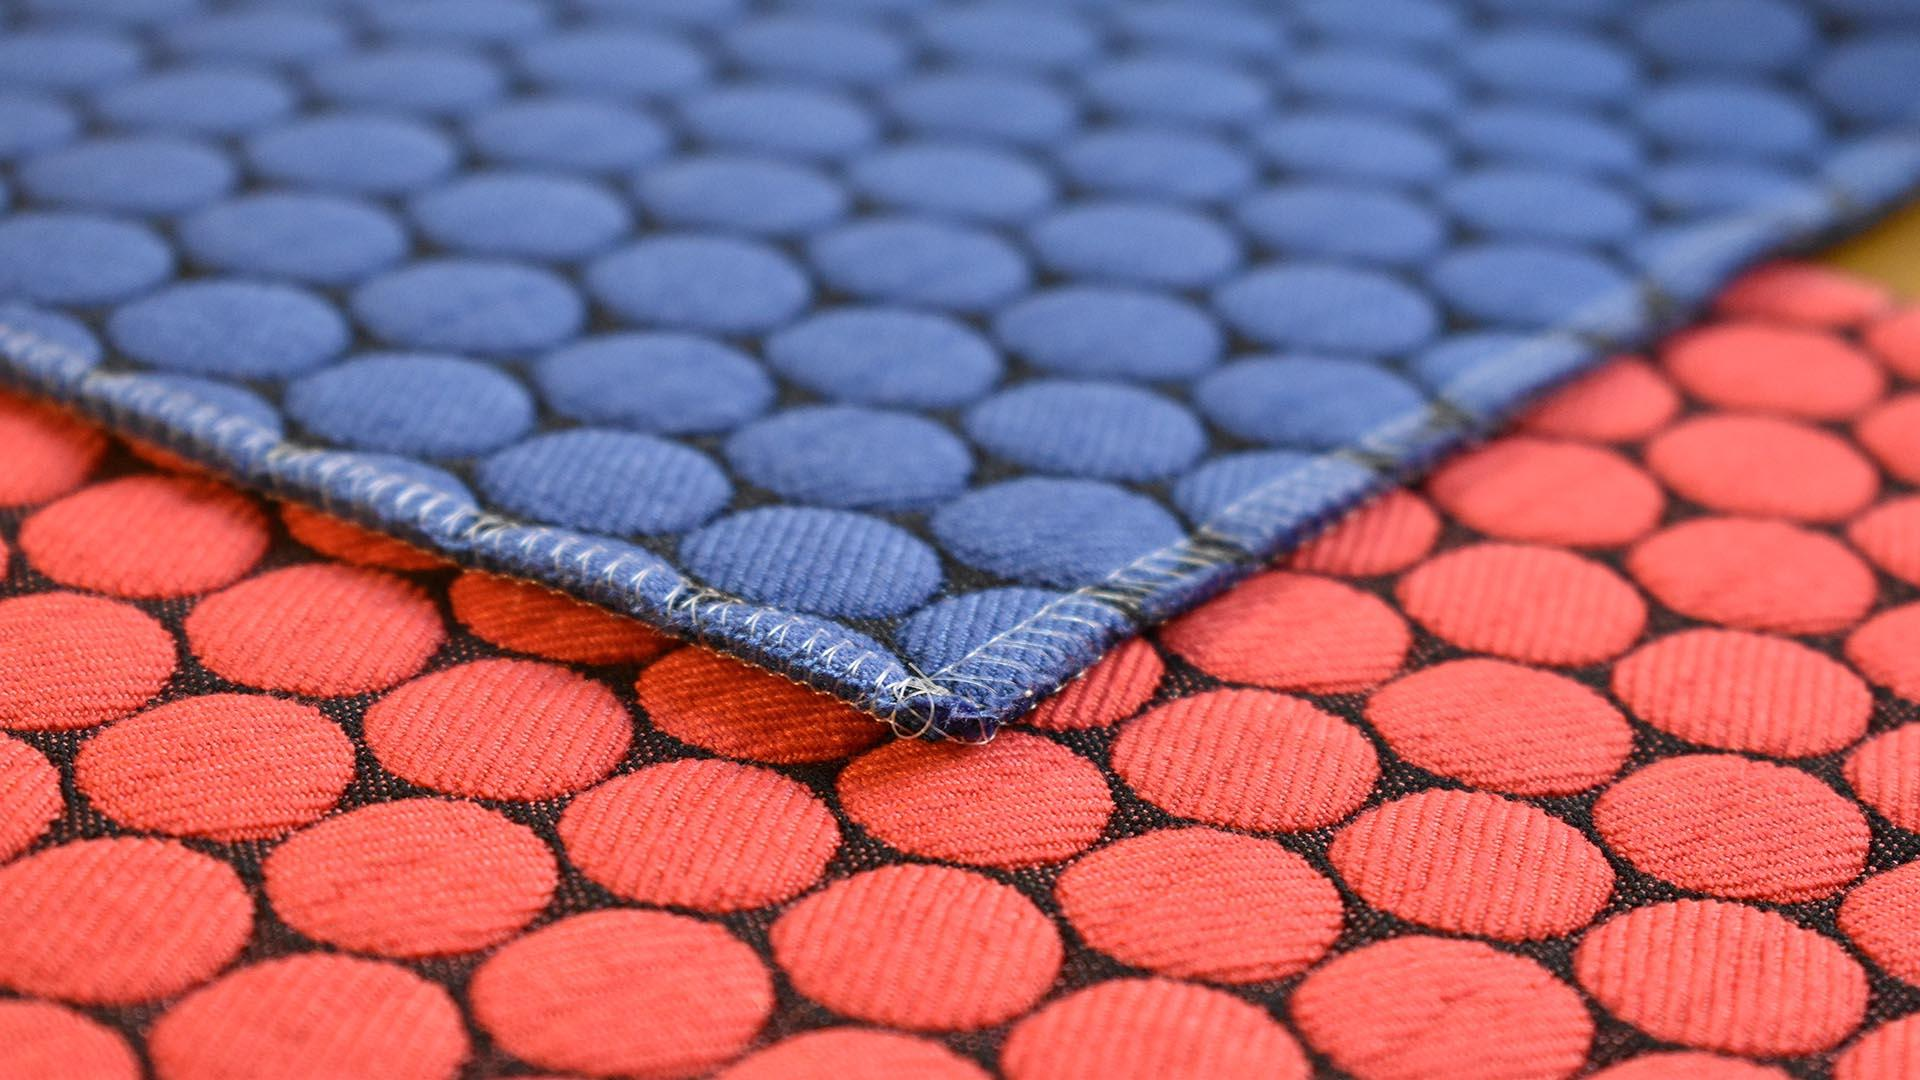 red and blue tiles of fabric